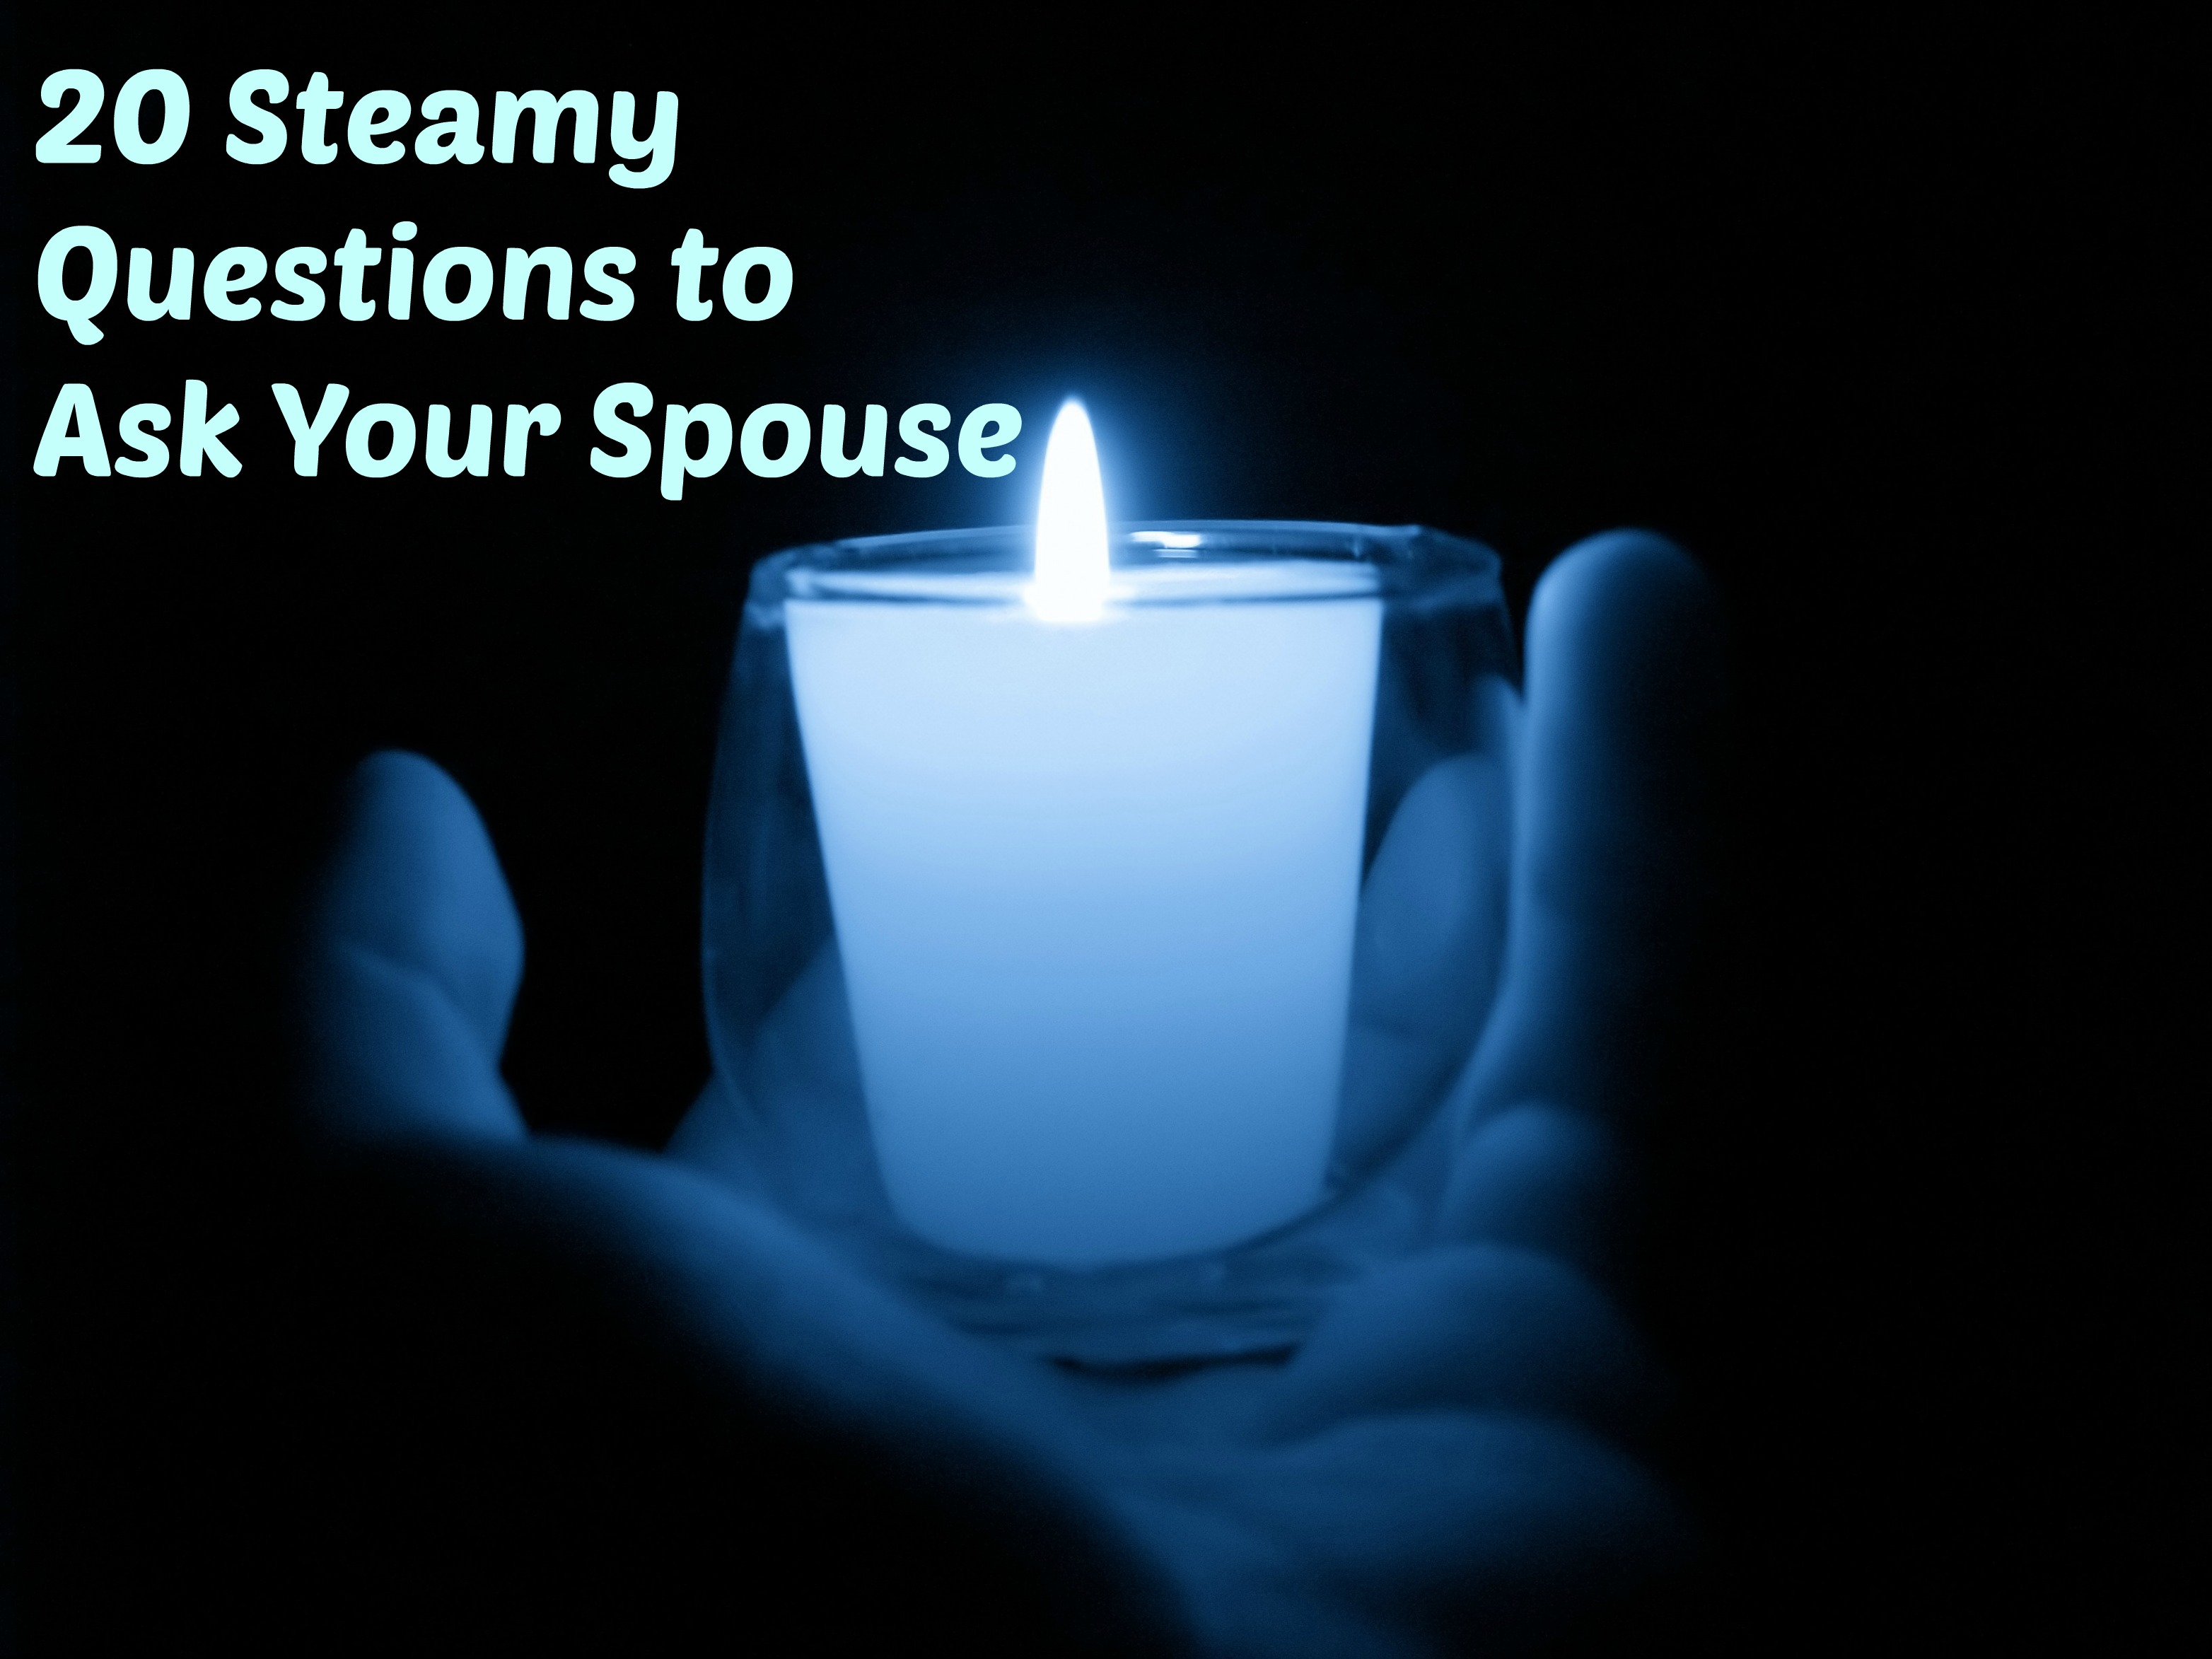 20-steamy-questions-to-ask-your-spouse